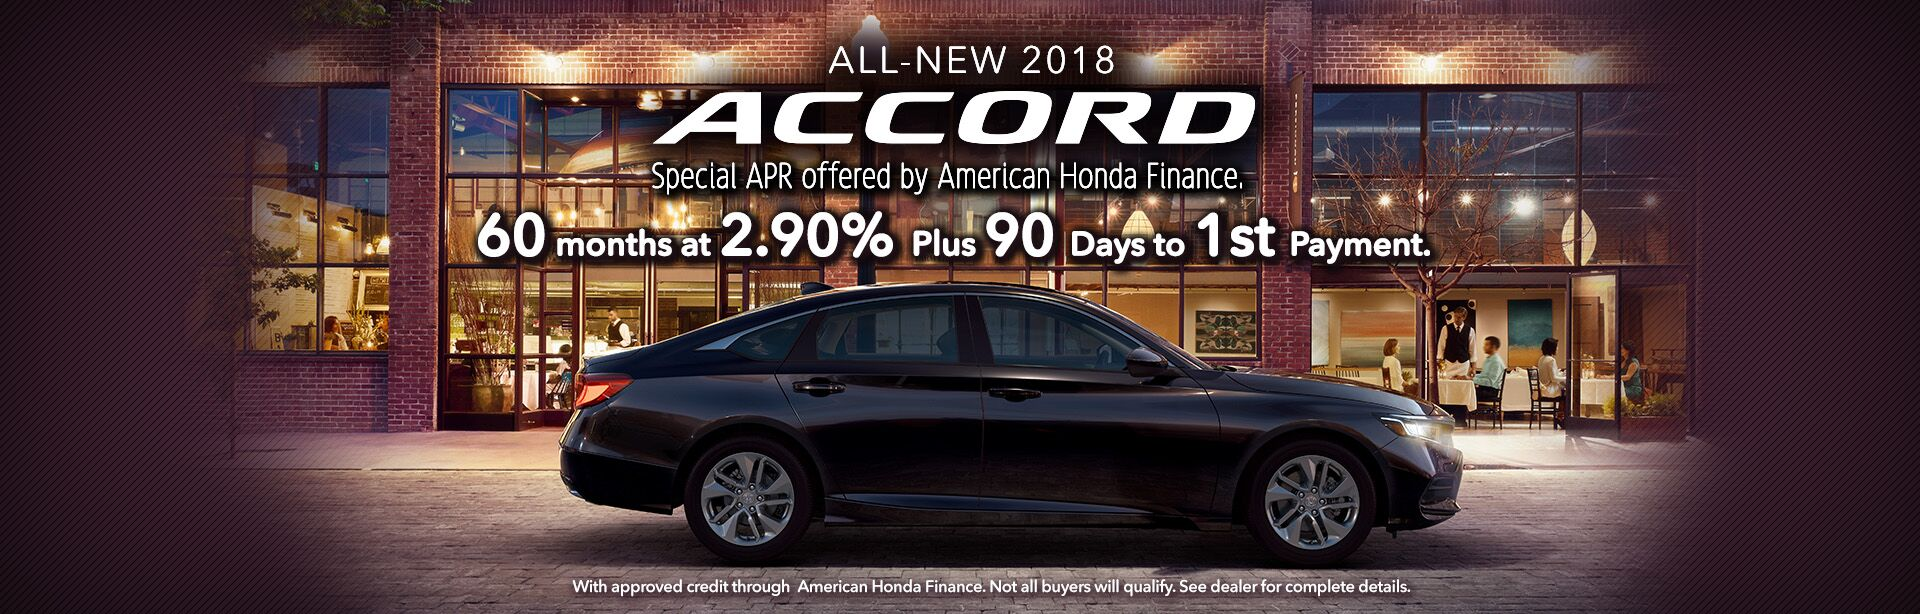 90 days to first payment on 2018 Honda Accord in Tuscaloosa